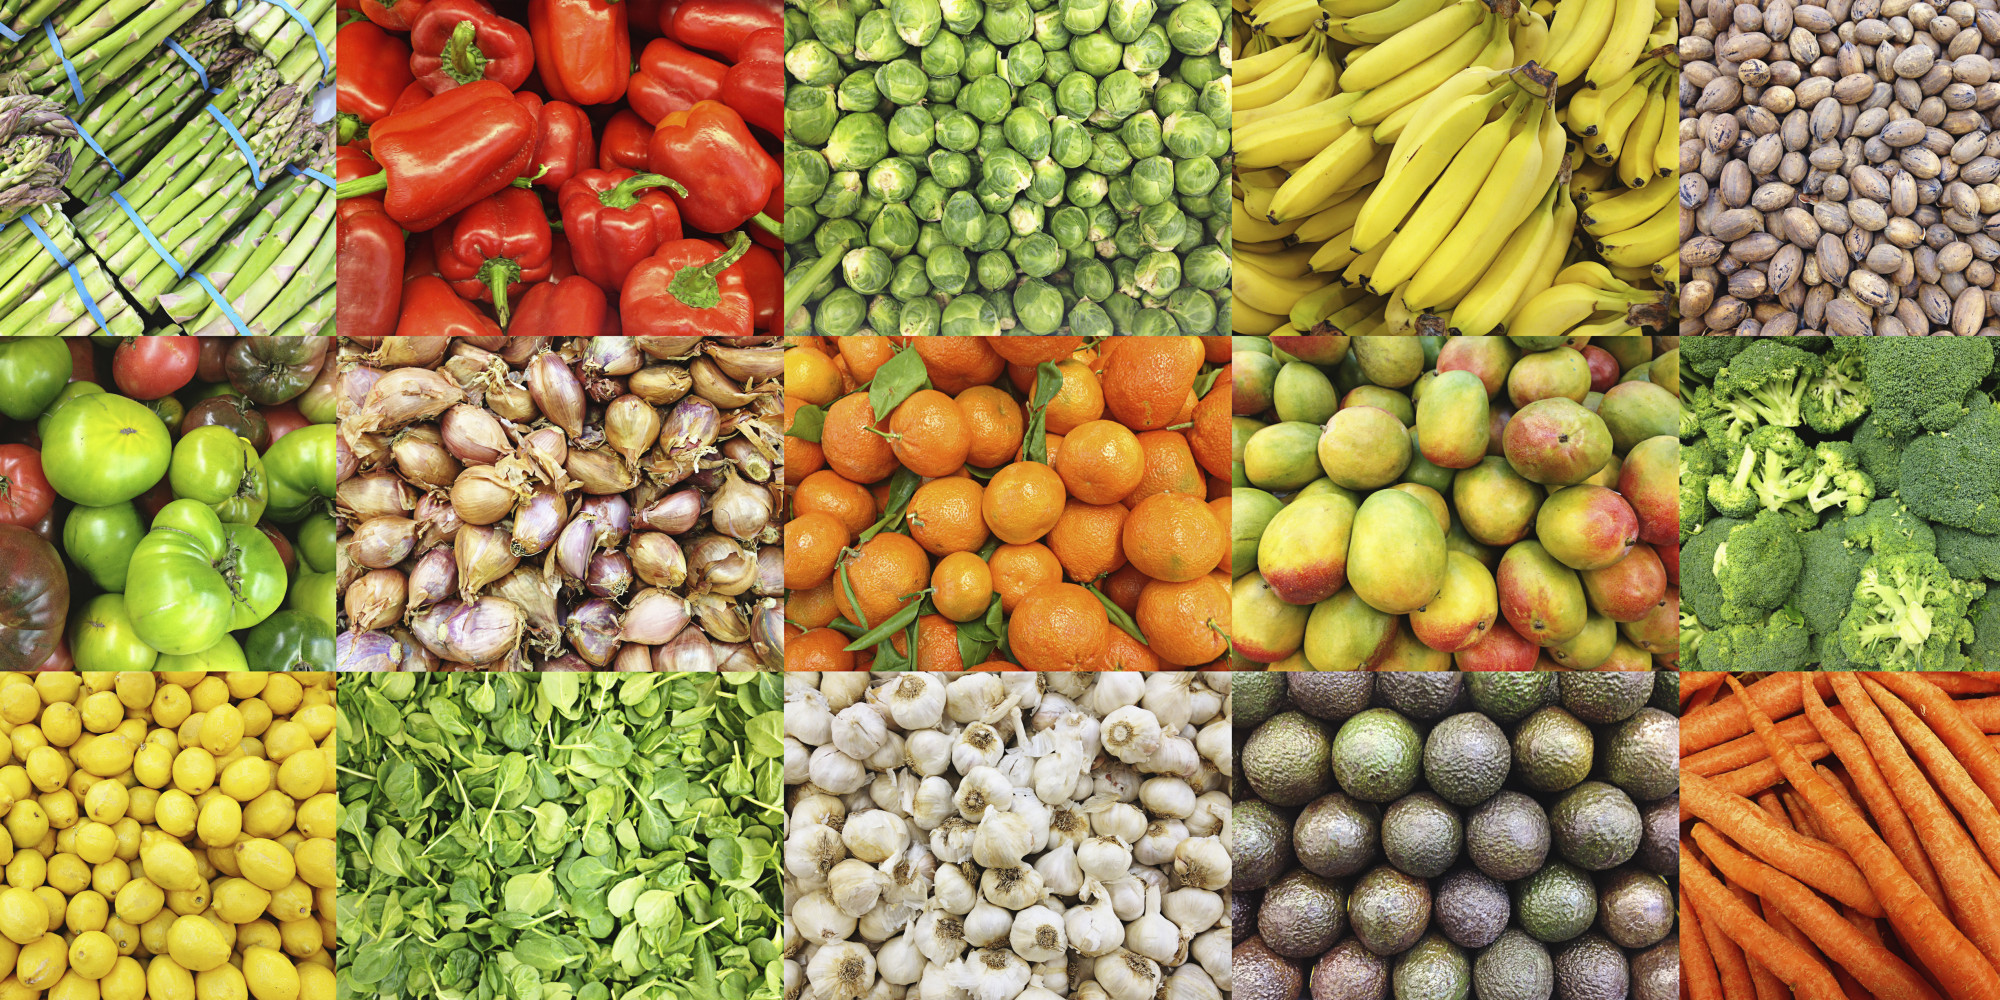 7 Fruits And Veggies A Day Easy Ways To Sneak Them In